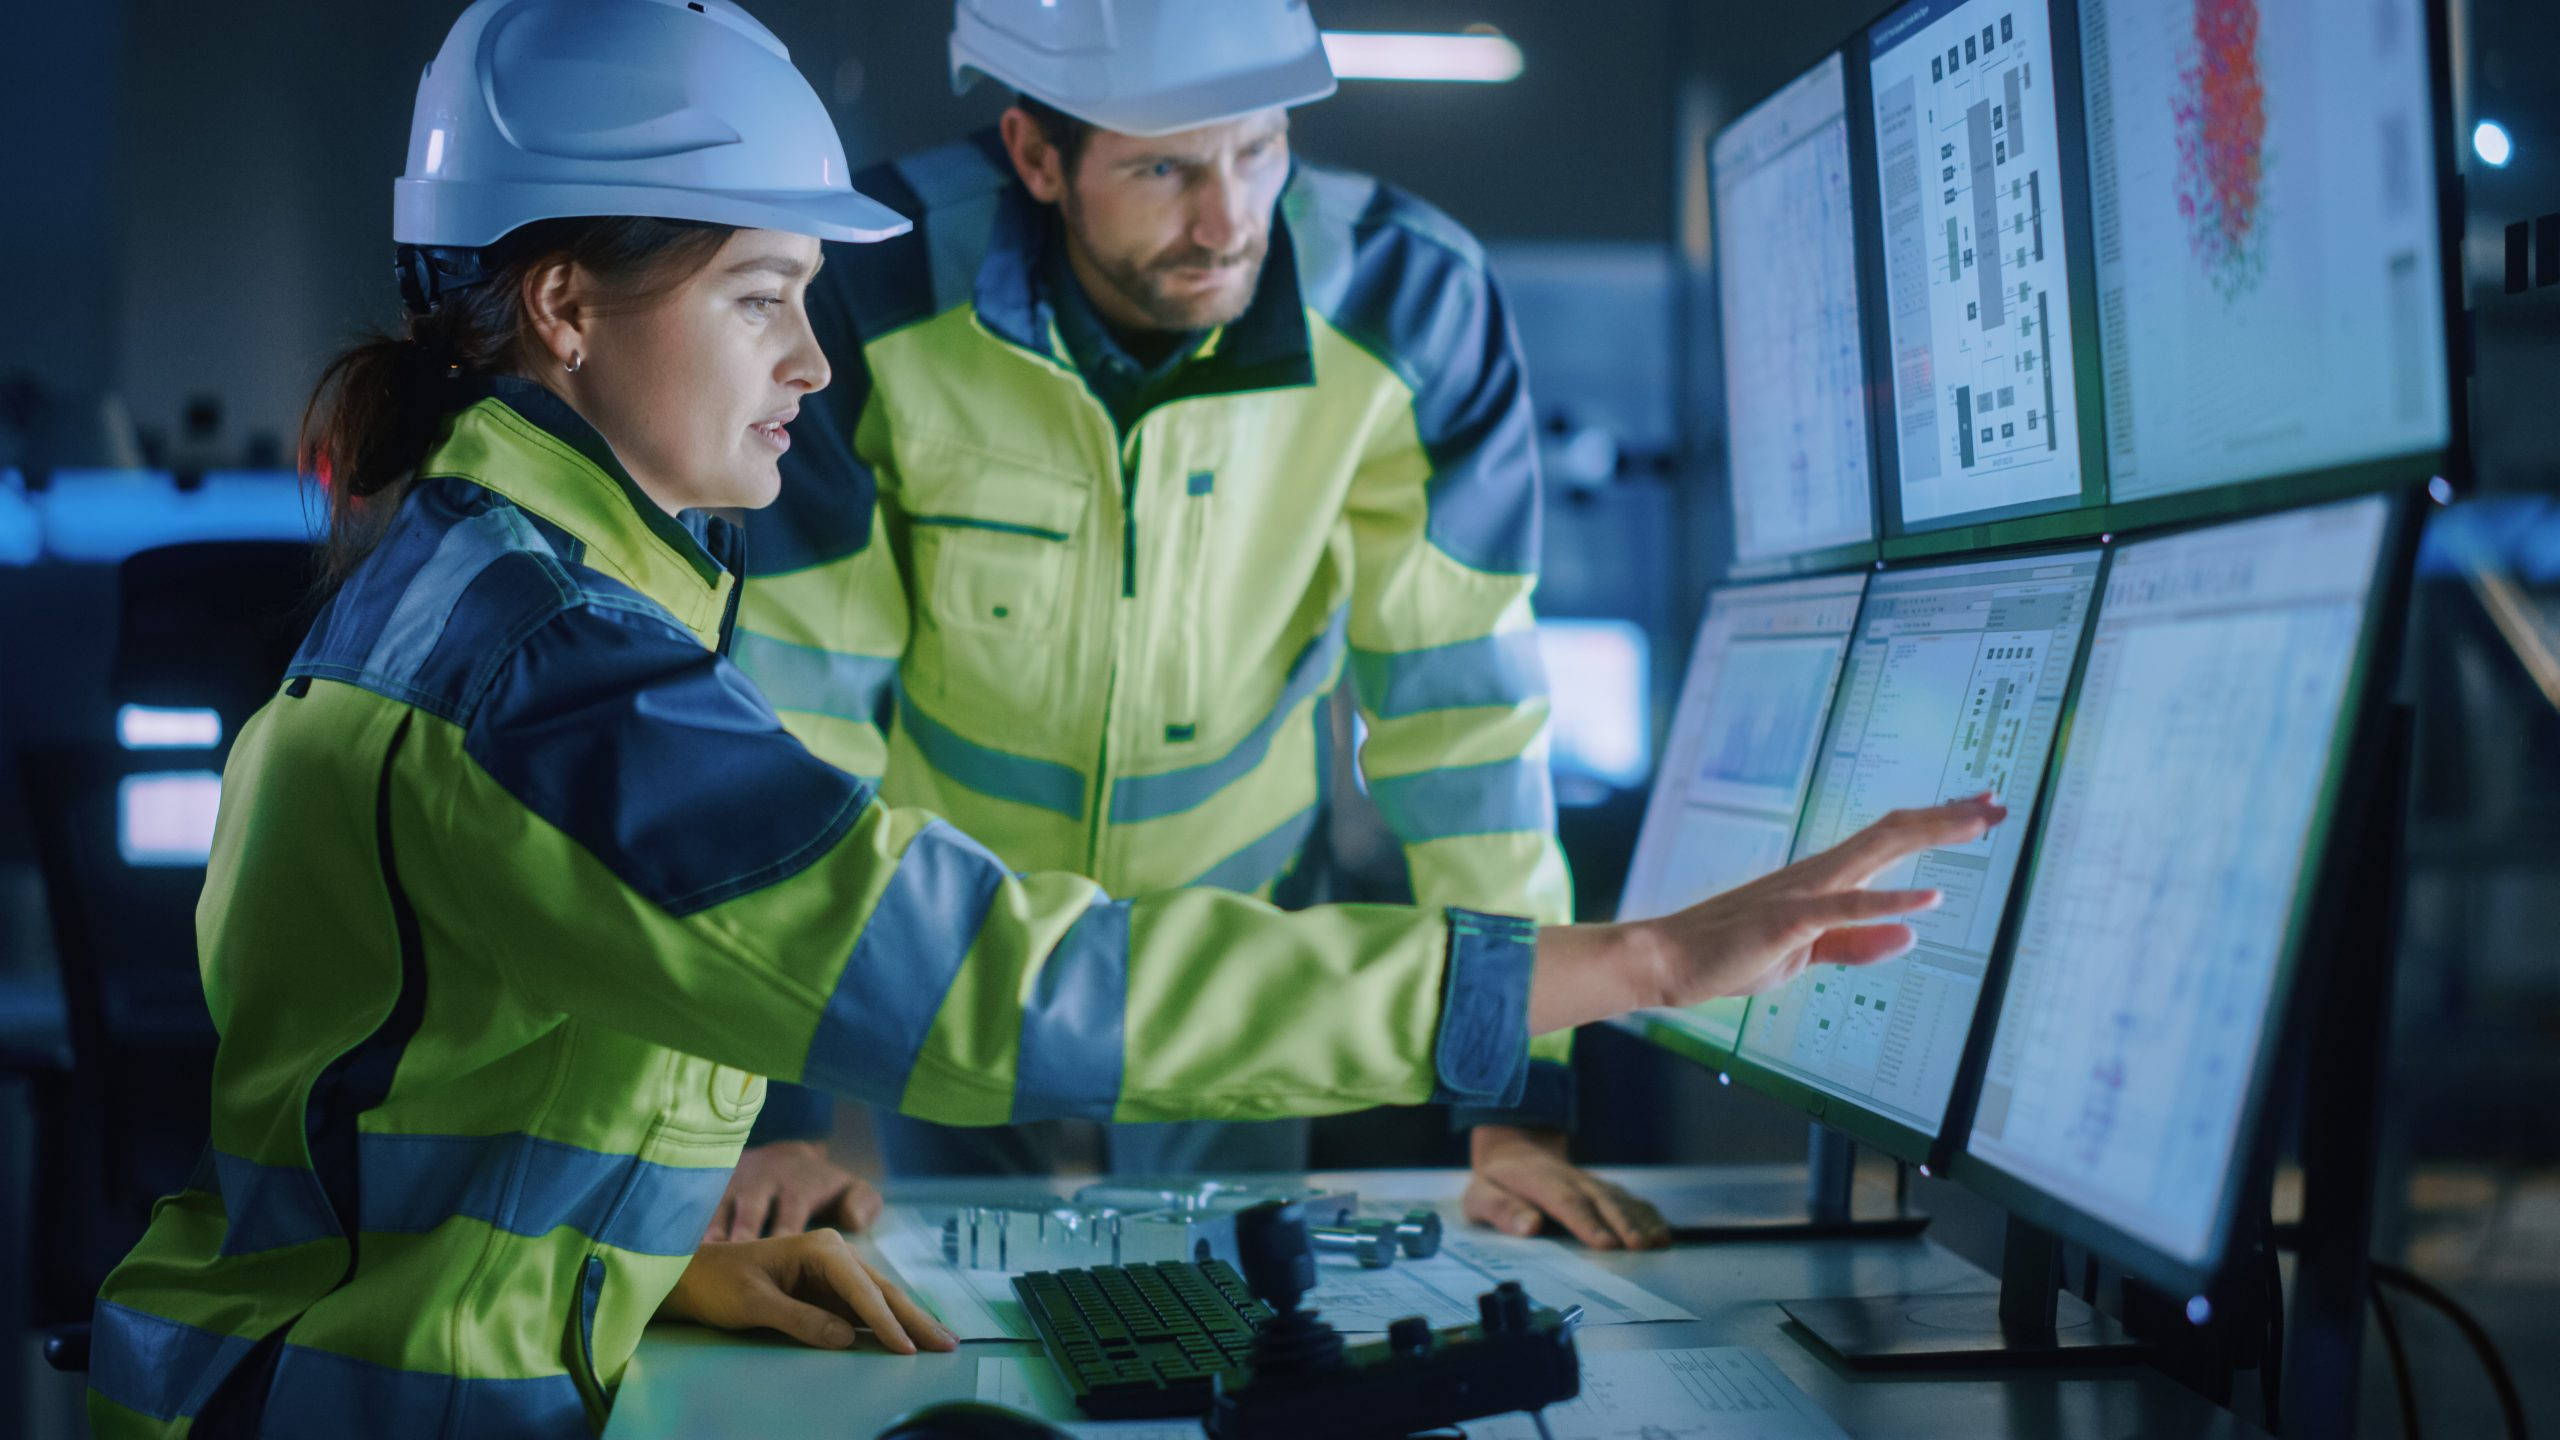 Industry 4.0 Modern Factory: Project Engineer Talks to Female Operator who Controls Facility Production Line, Uses Computer with Screens Showing AI, Machine Learning Enhanced Assembly Process; Shutterstock ID 1936499779; purchase_order: -; job: -; client: -; other: -